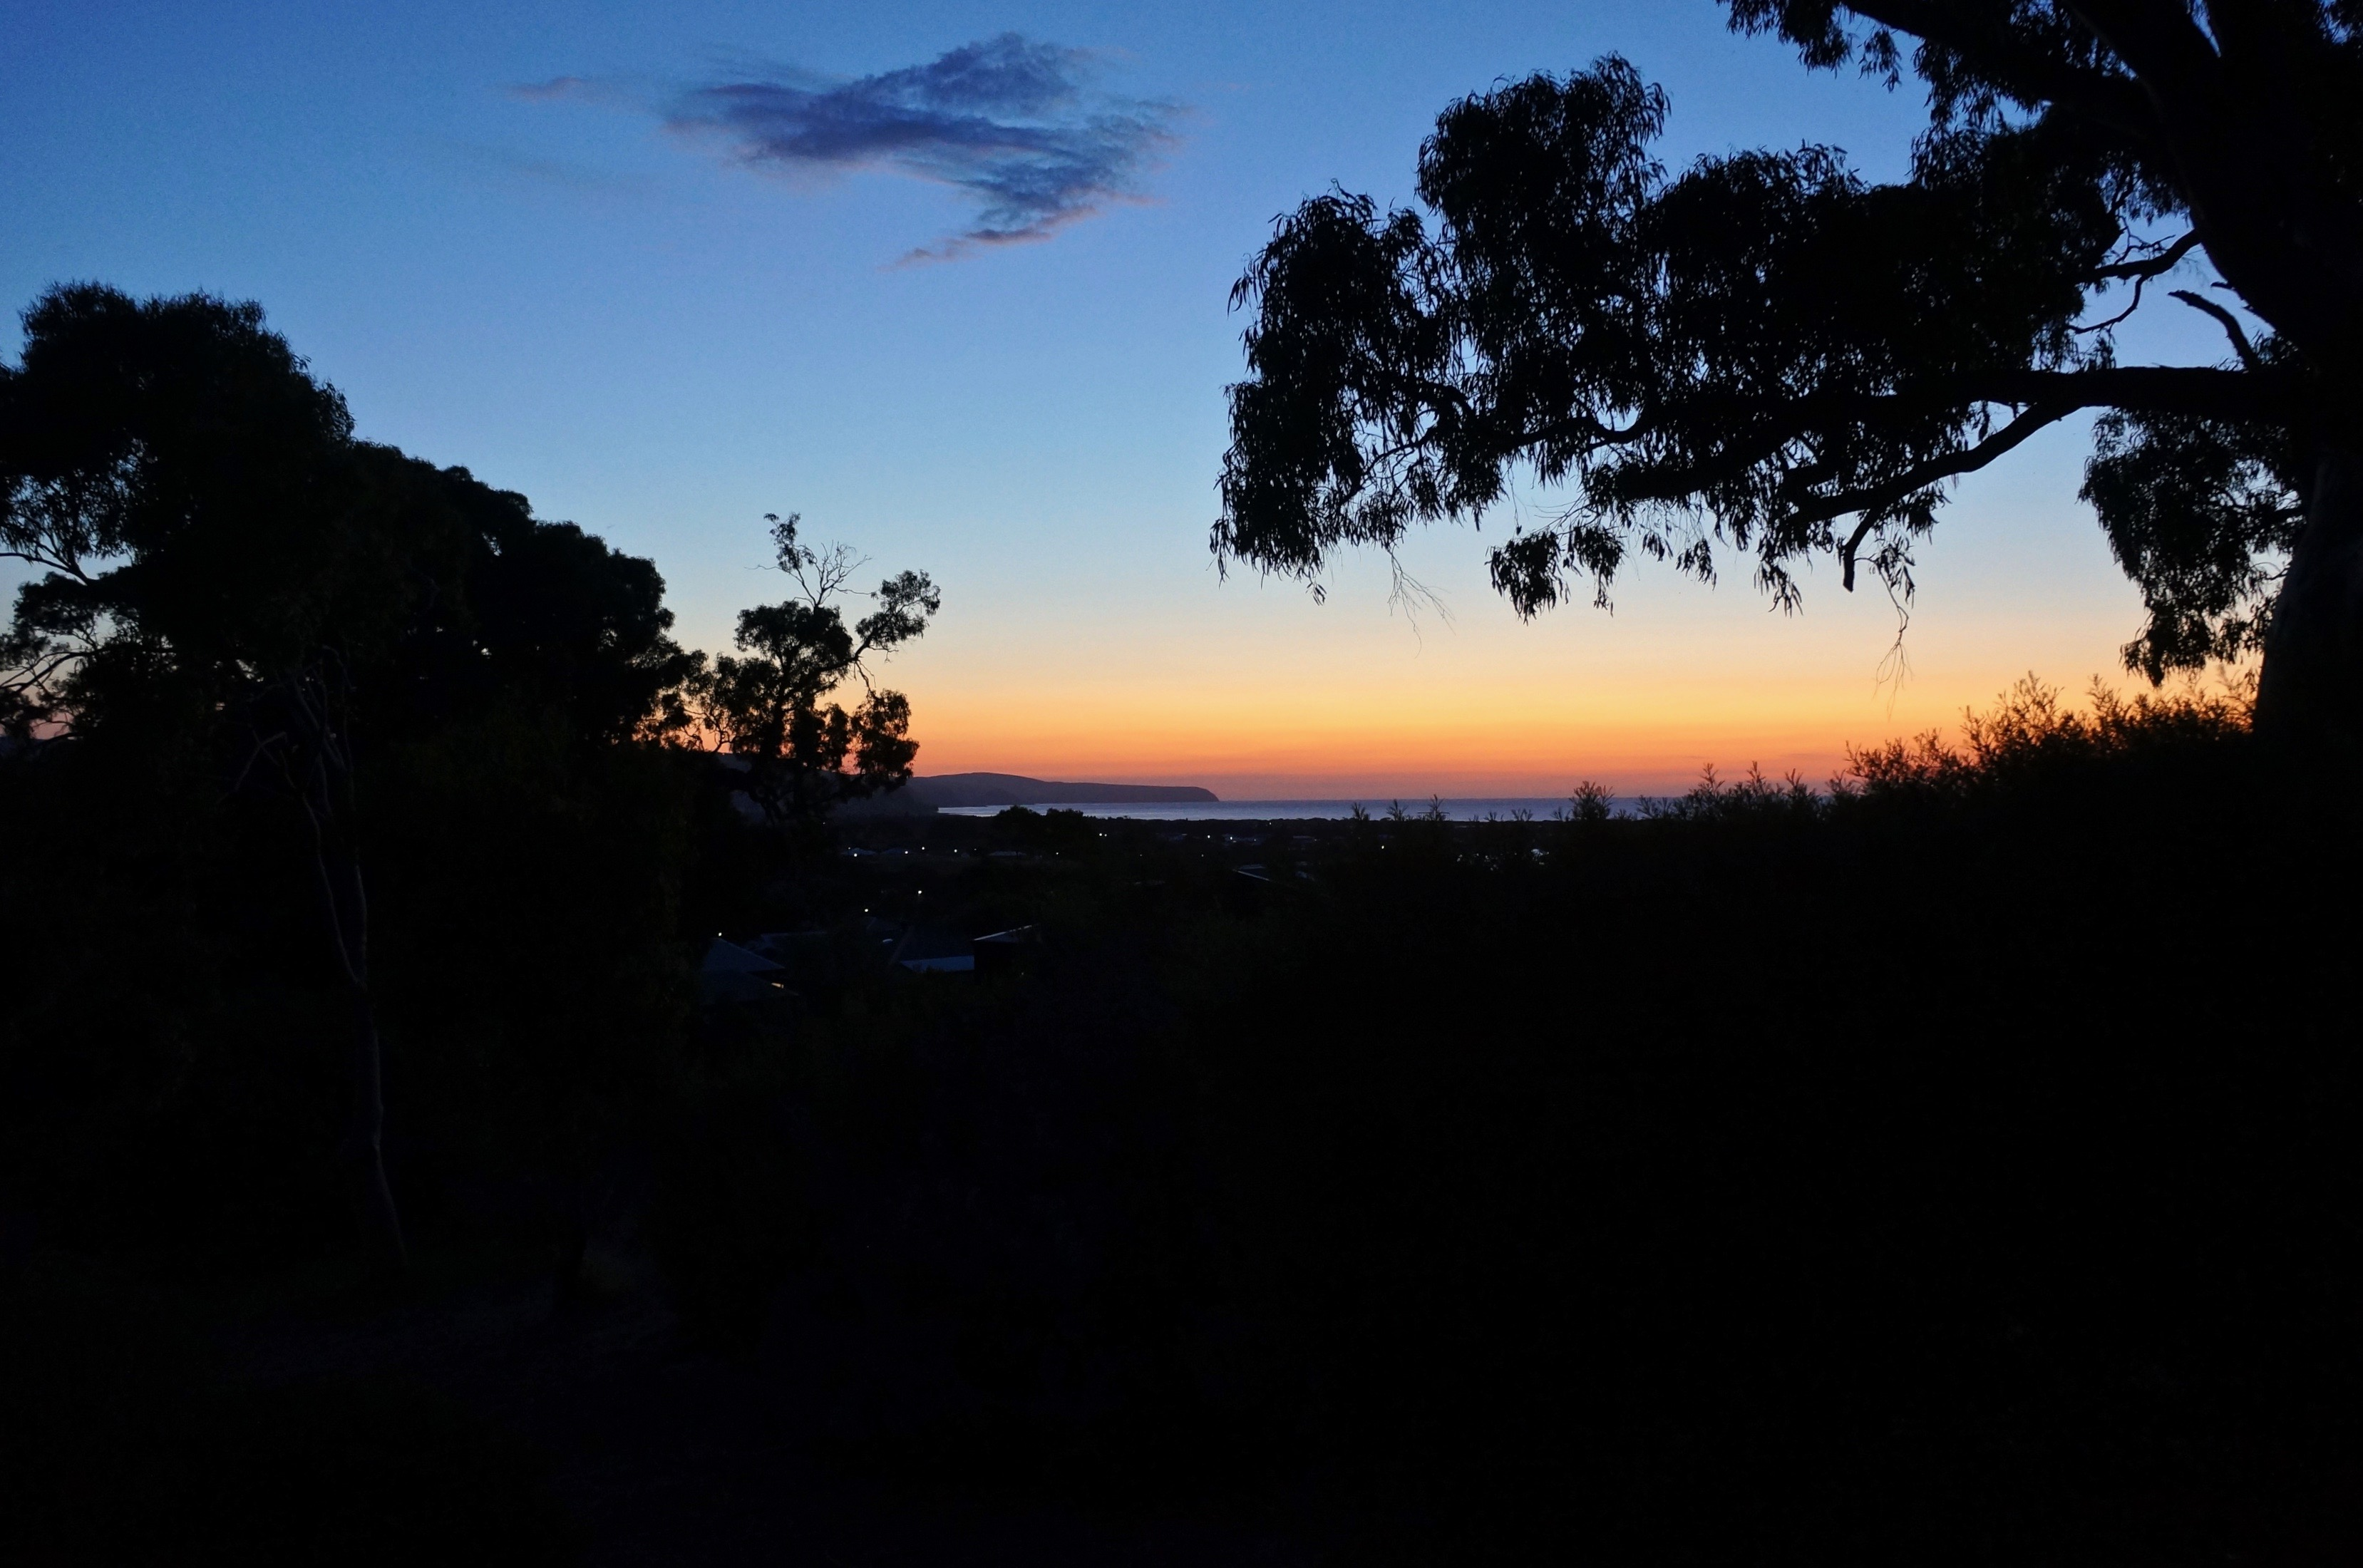 Sunset on the Fleurieu Peninsula